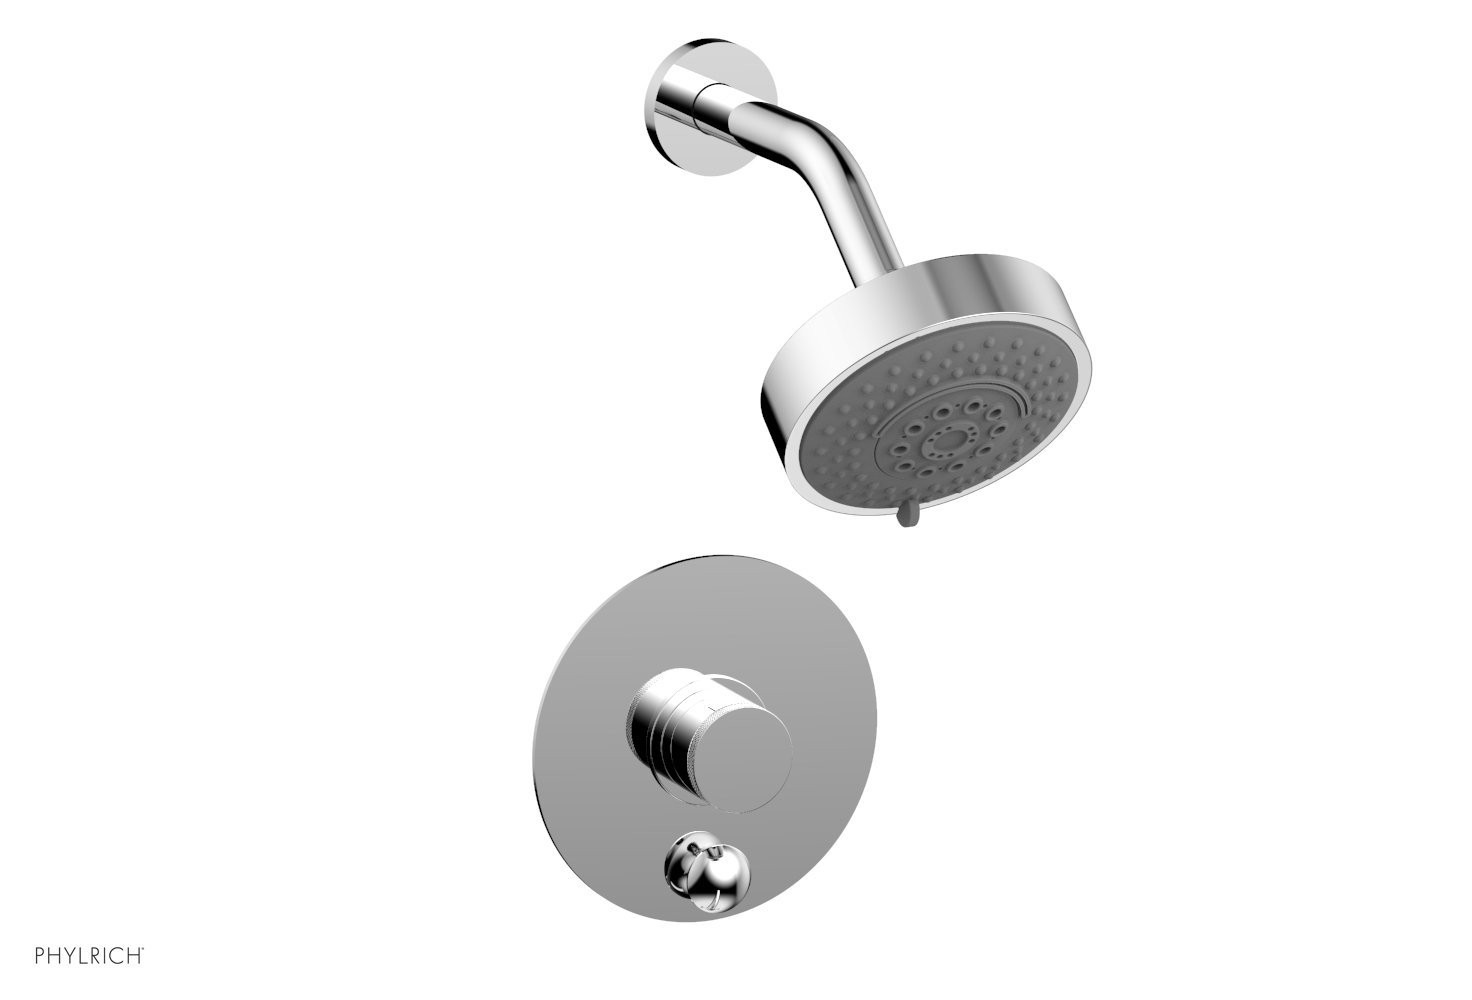 PHYLRICH 4-188 BASIC II WALL MOUNT PRESSURE BALANCE SHOWER AND DIVERTER SET WITH KNURLED HANDLE